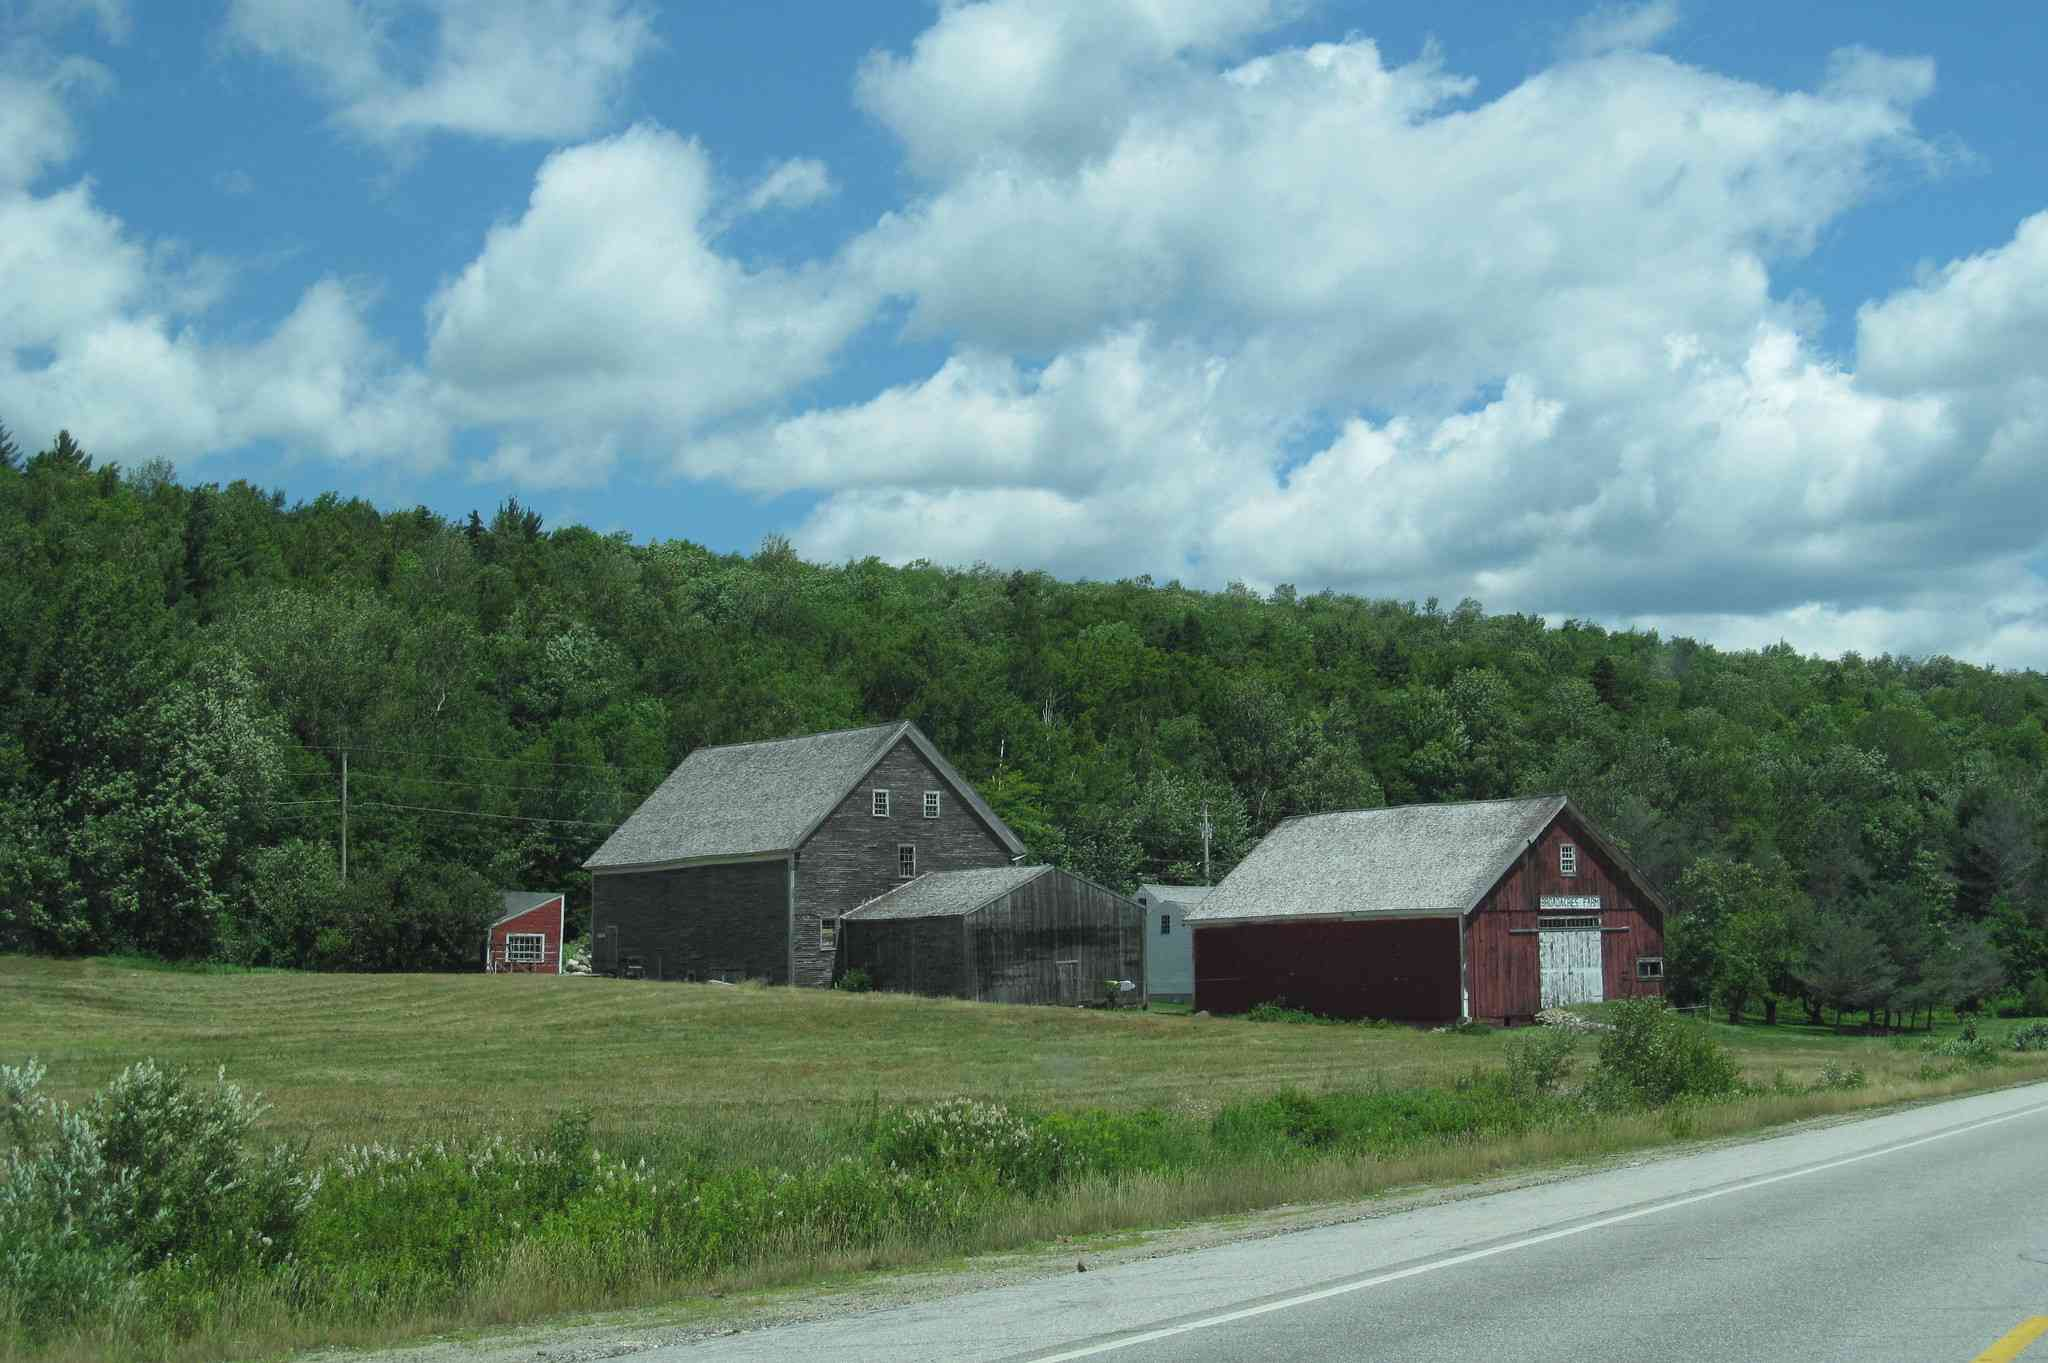 Barns on the side of U.S. Route 2, New Hampshire